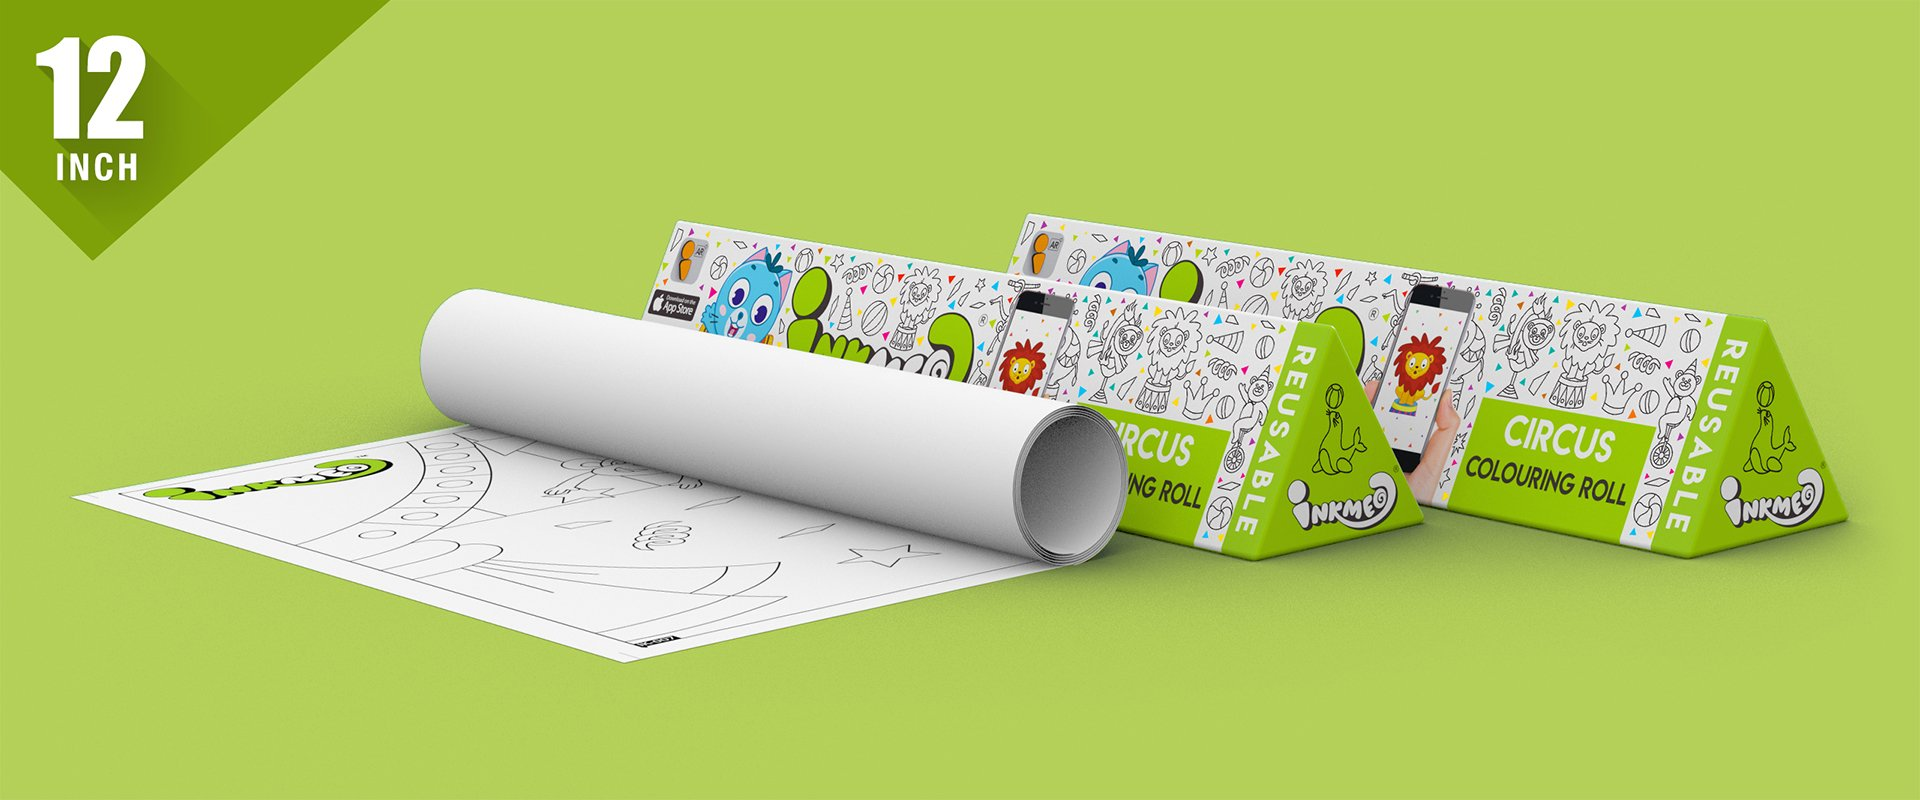 Circus Colouring Roll (12 inch) - Inkmeo